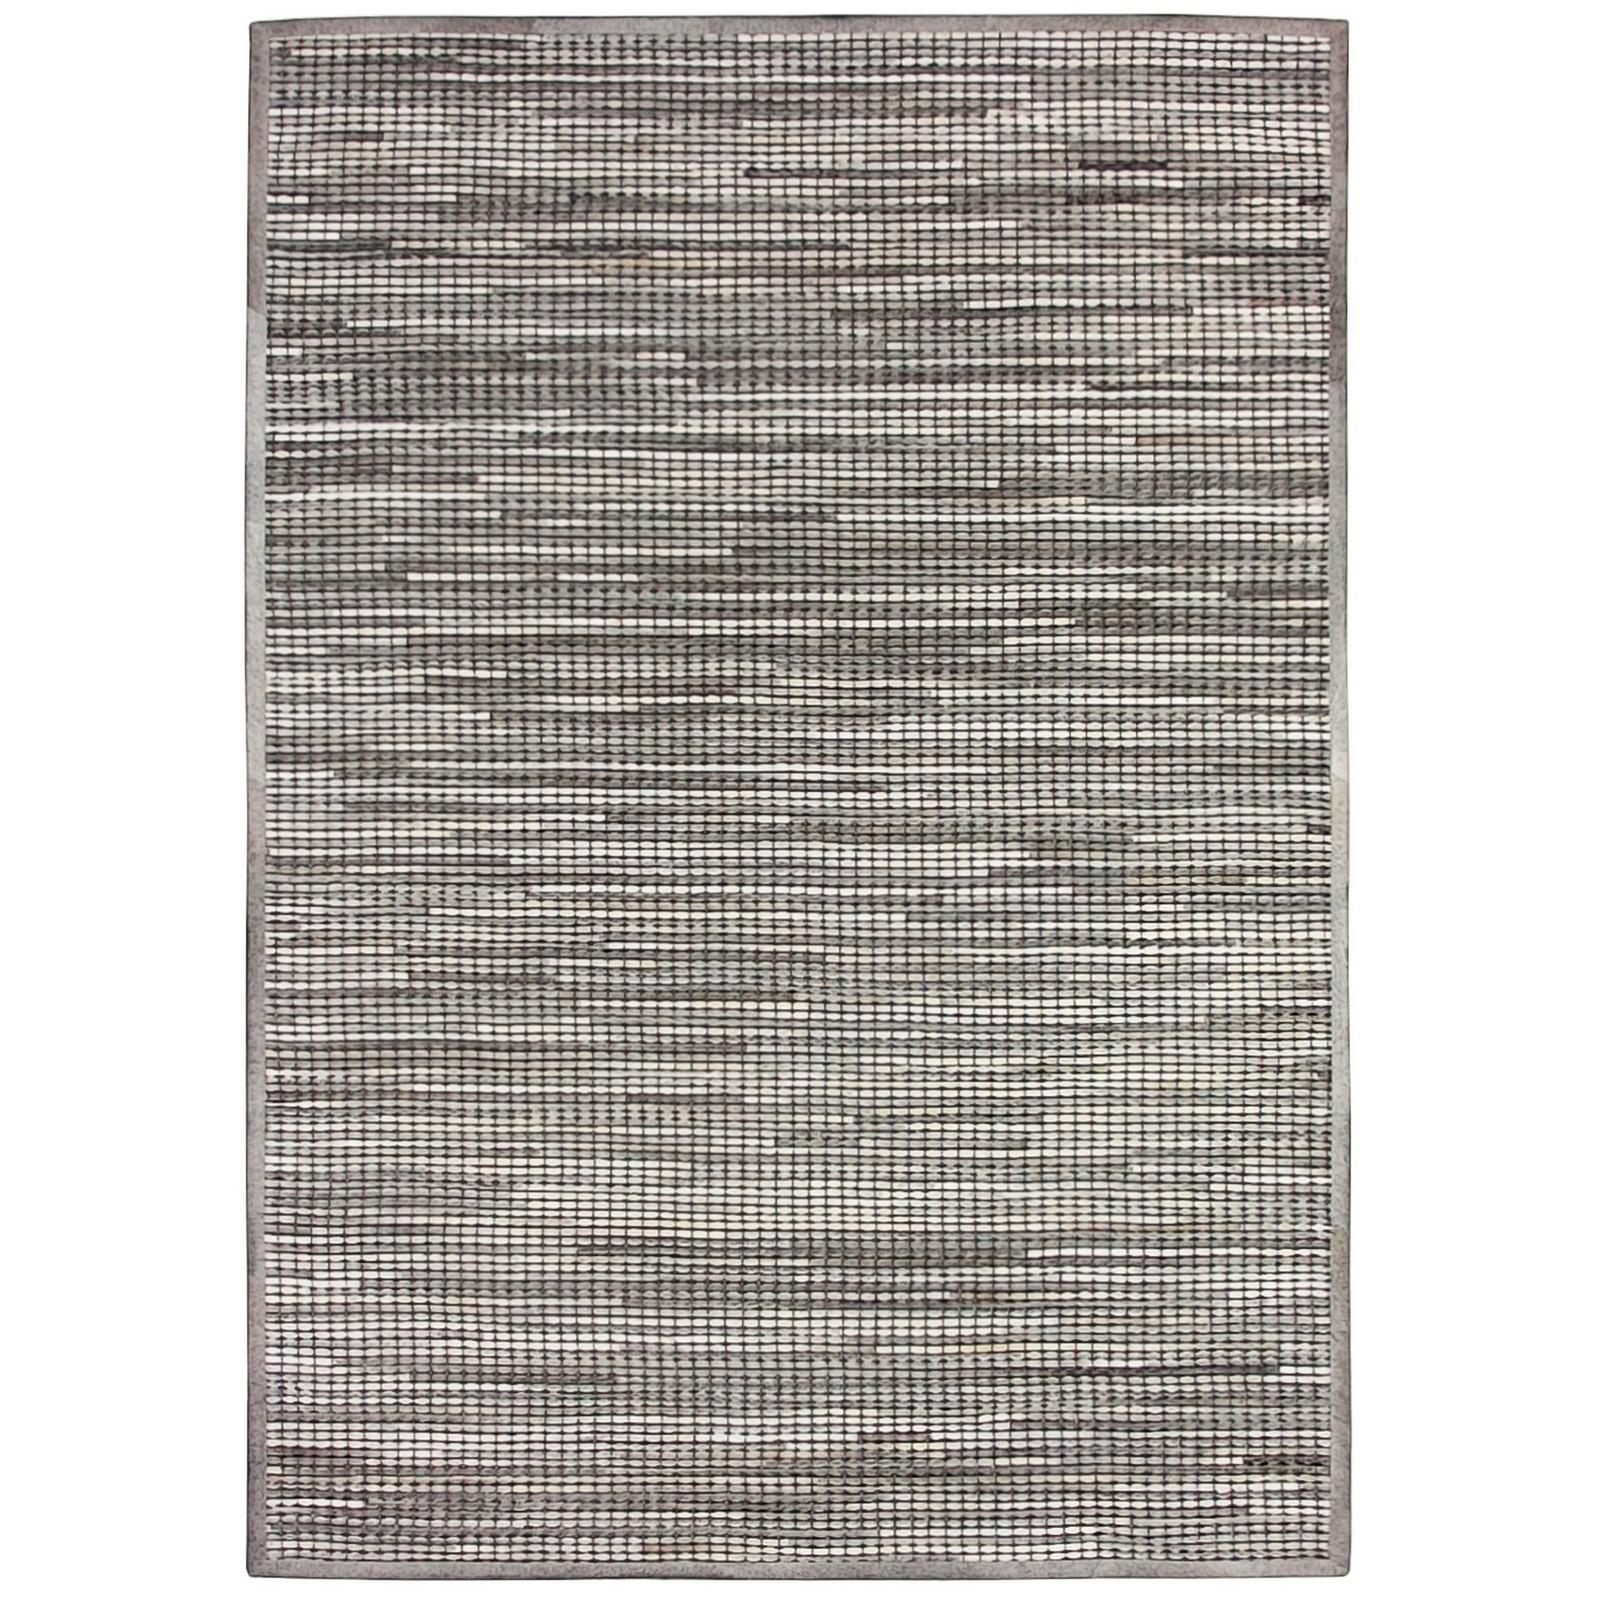 Chase Handwoven Hide & Leather Rug, 250x350cm, Grey